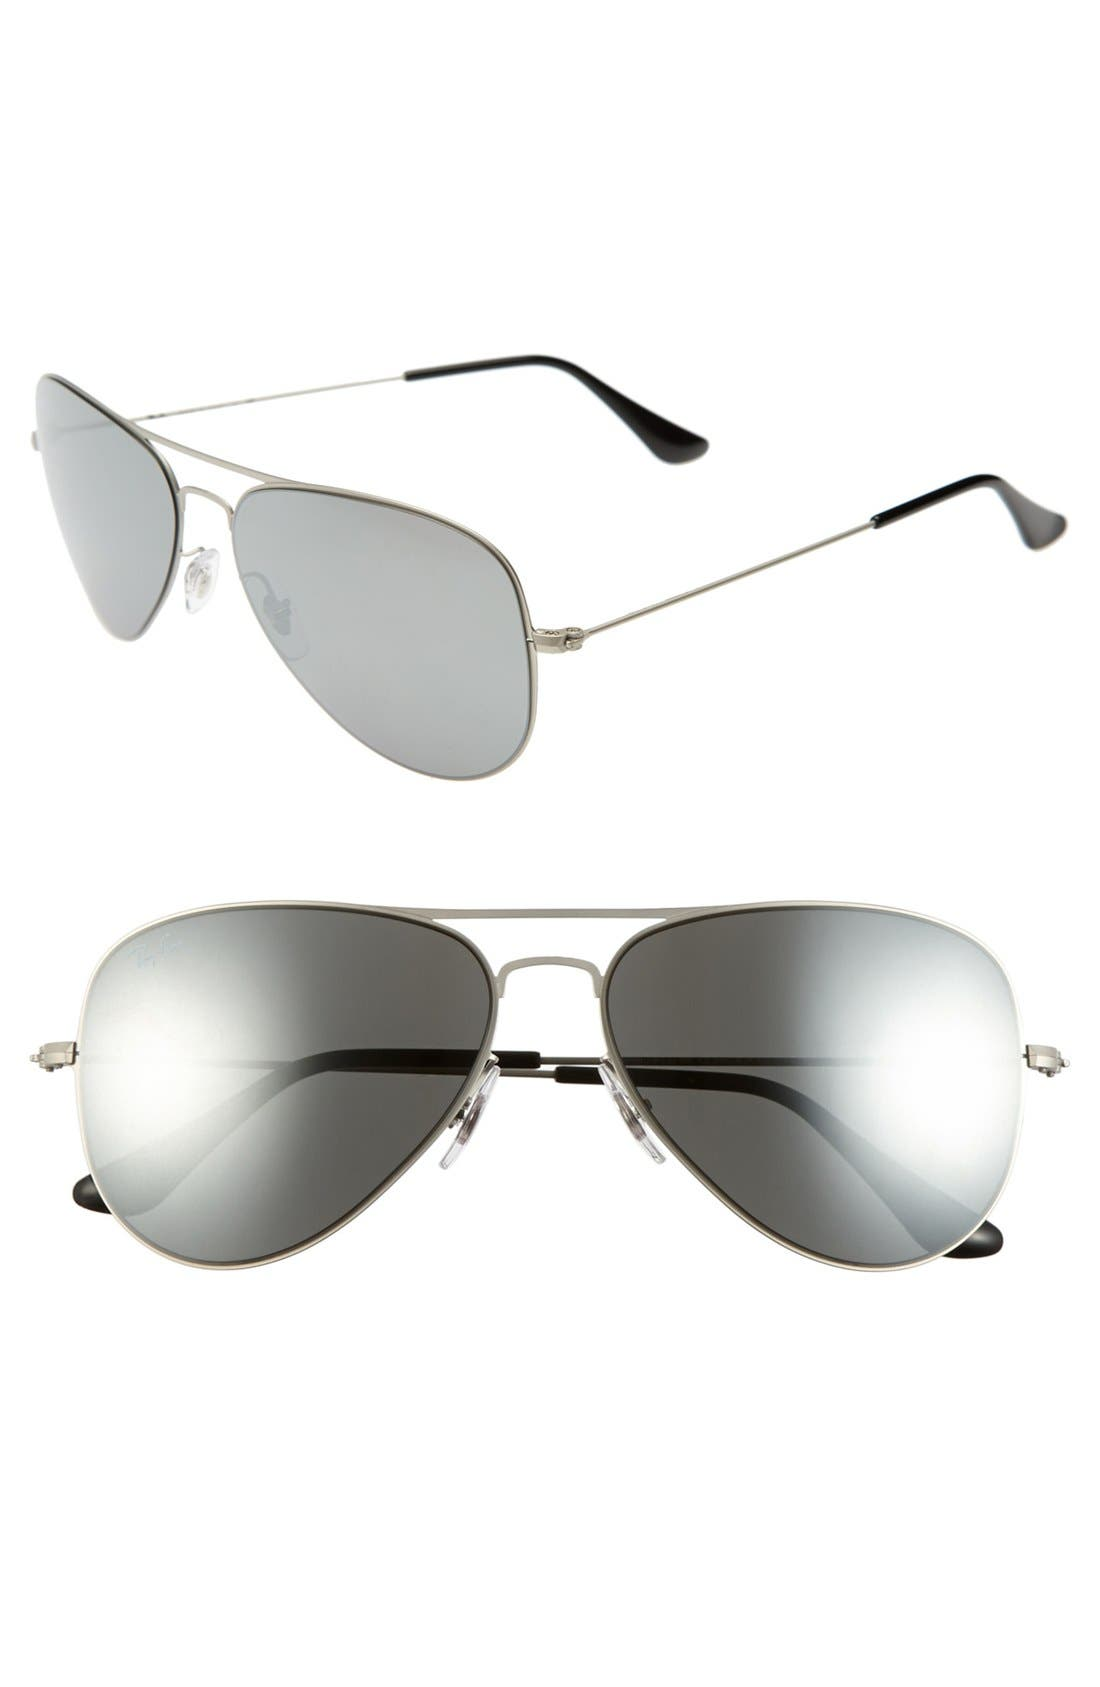 Main Image - Ray-Ban 58mm Steel Aviator Sunglasses